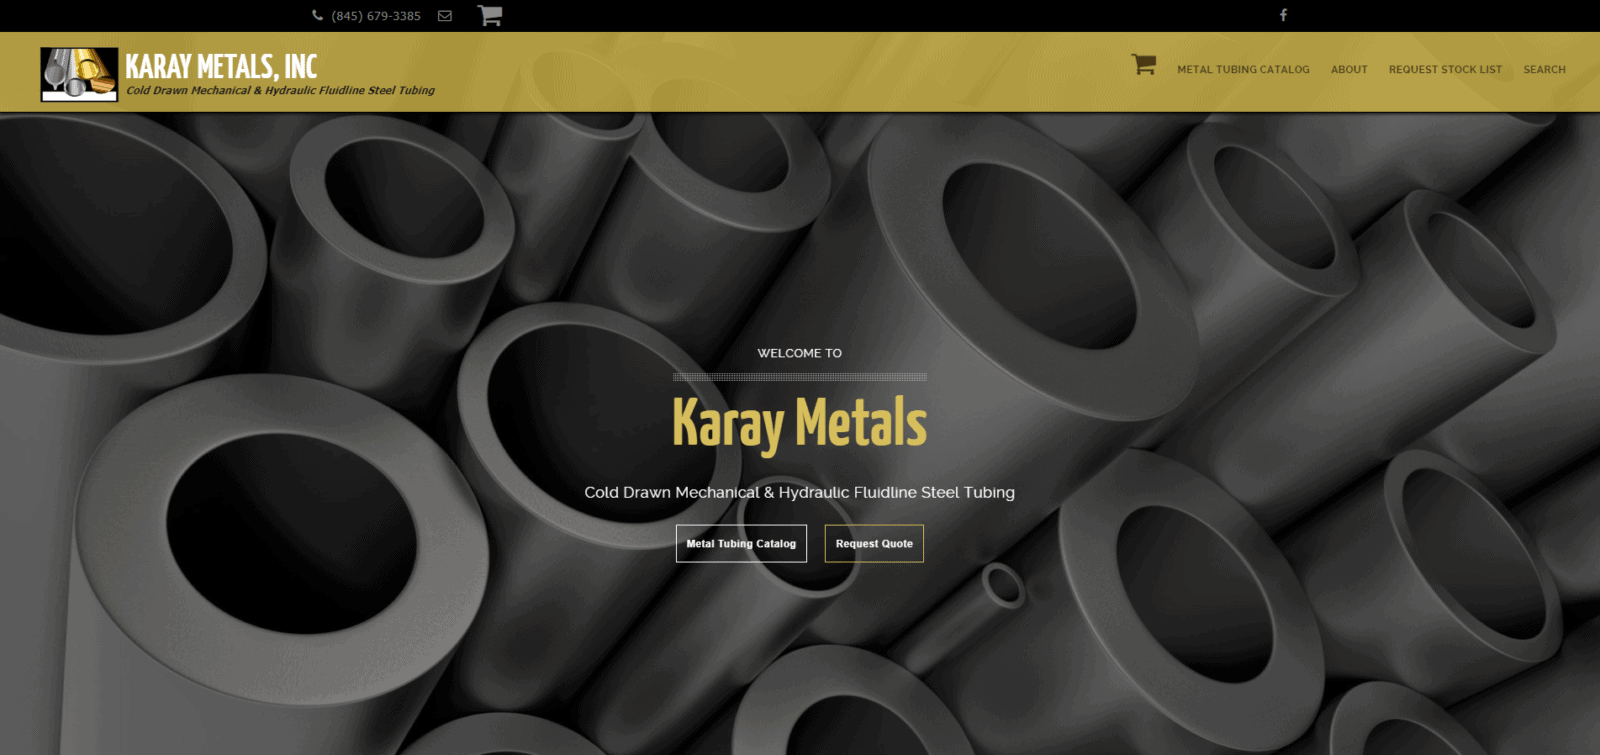 Second generation metals supplier gets a WordPress, Woocommerce powered SEO optimized website.